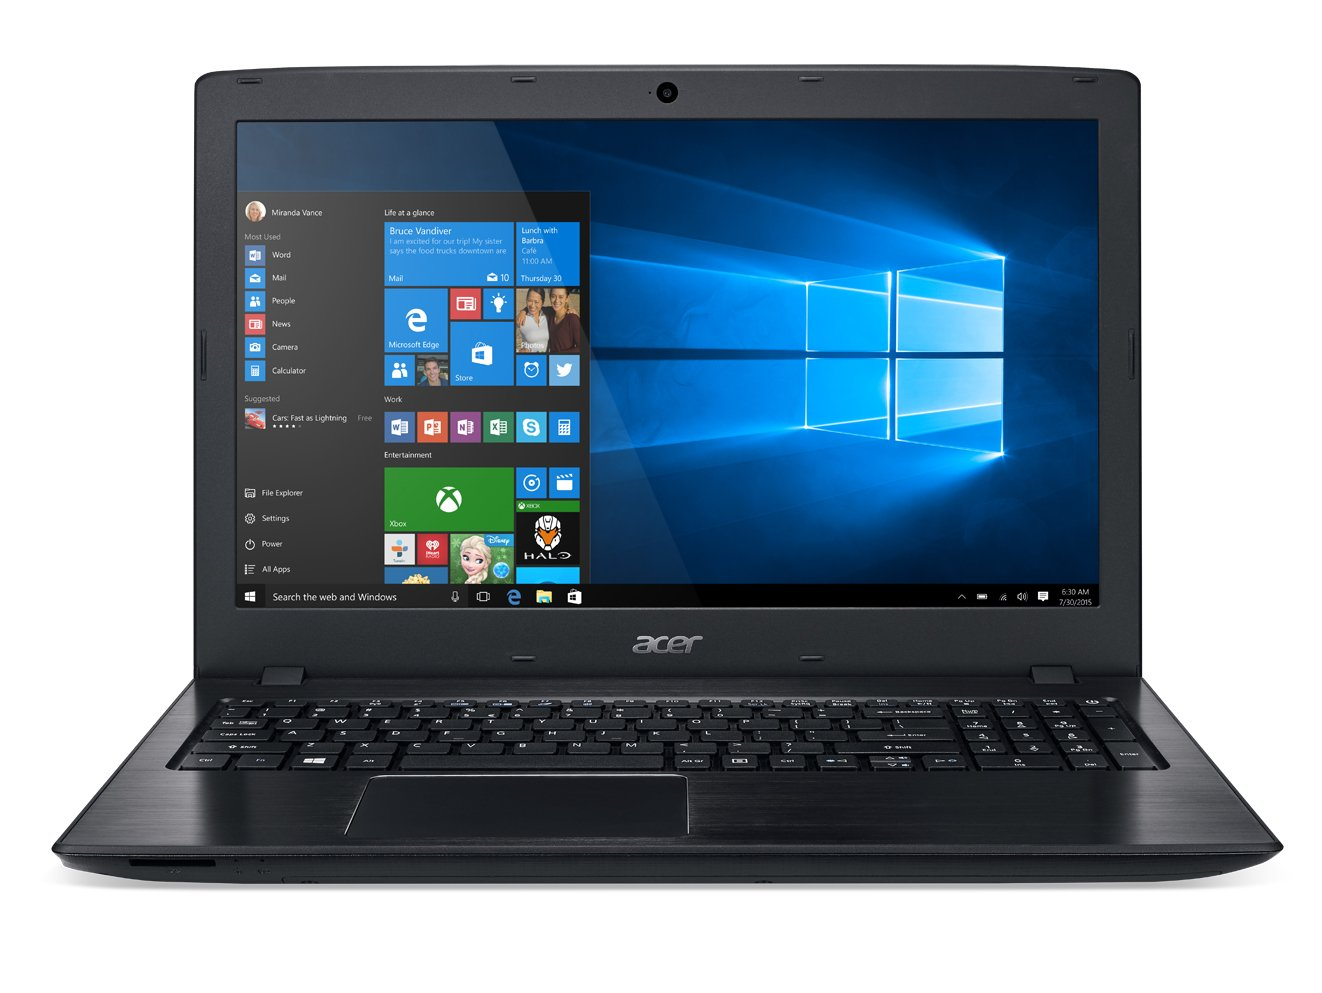 Acer Aspire E 15 E5-575G-57D4 15.6-Inches Full HD Notebook (7th Gen Intel Core i5-7200U, GeForce 940MX, 8GB DDR4 SDRAM, 256GB SSD, Windows 10 Home), Obsidian Black by Acer (Image #1)